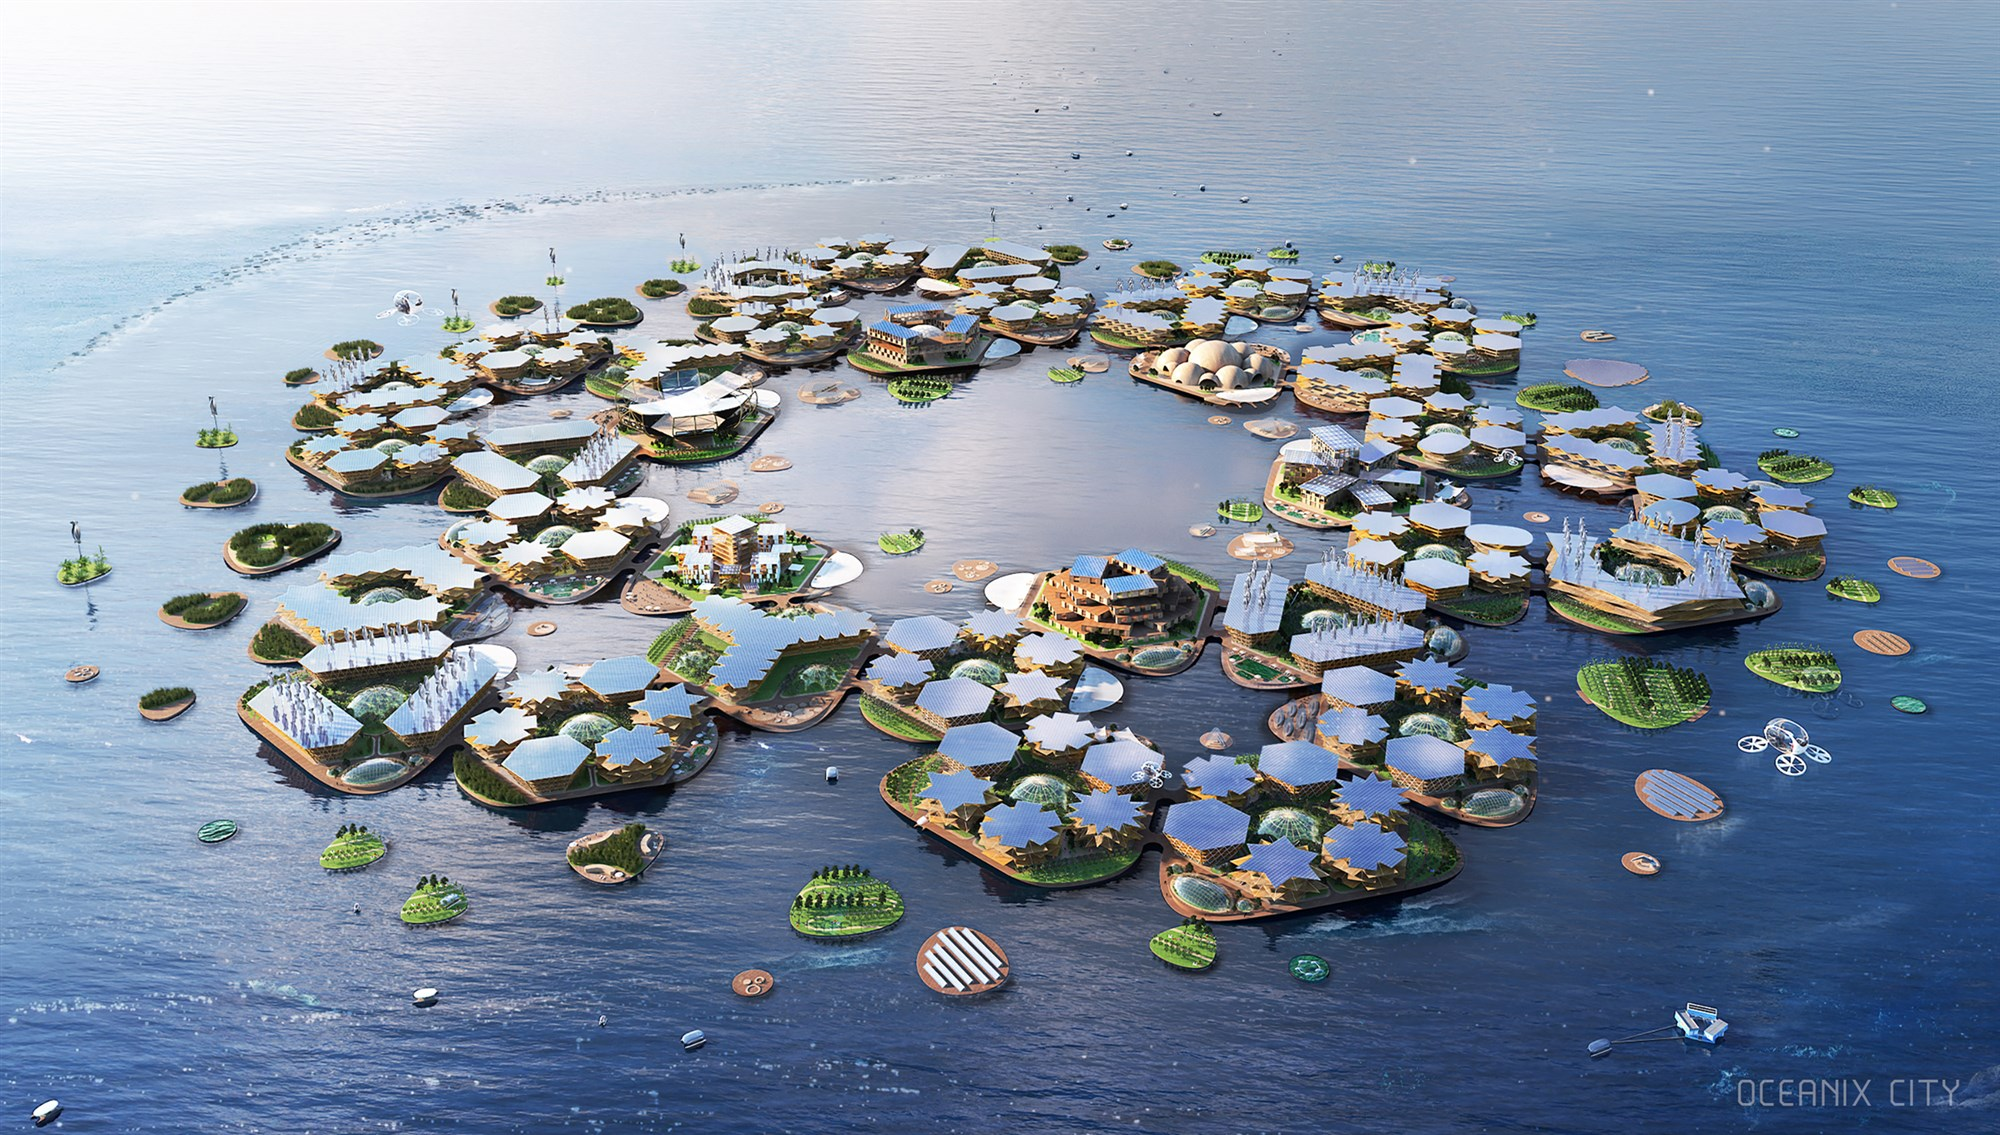 Oceanix City Project Is Climate-Proof & Has The Support Of UN!